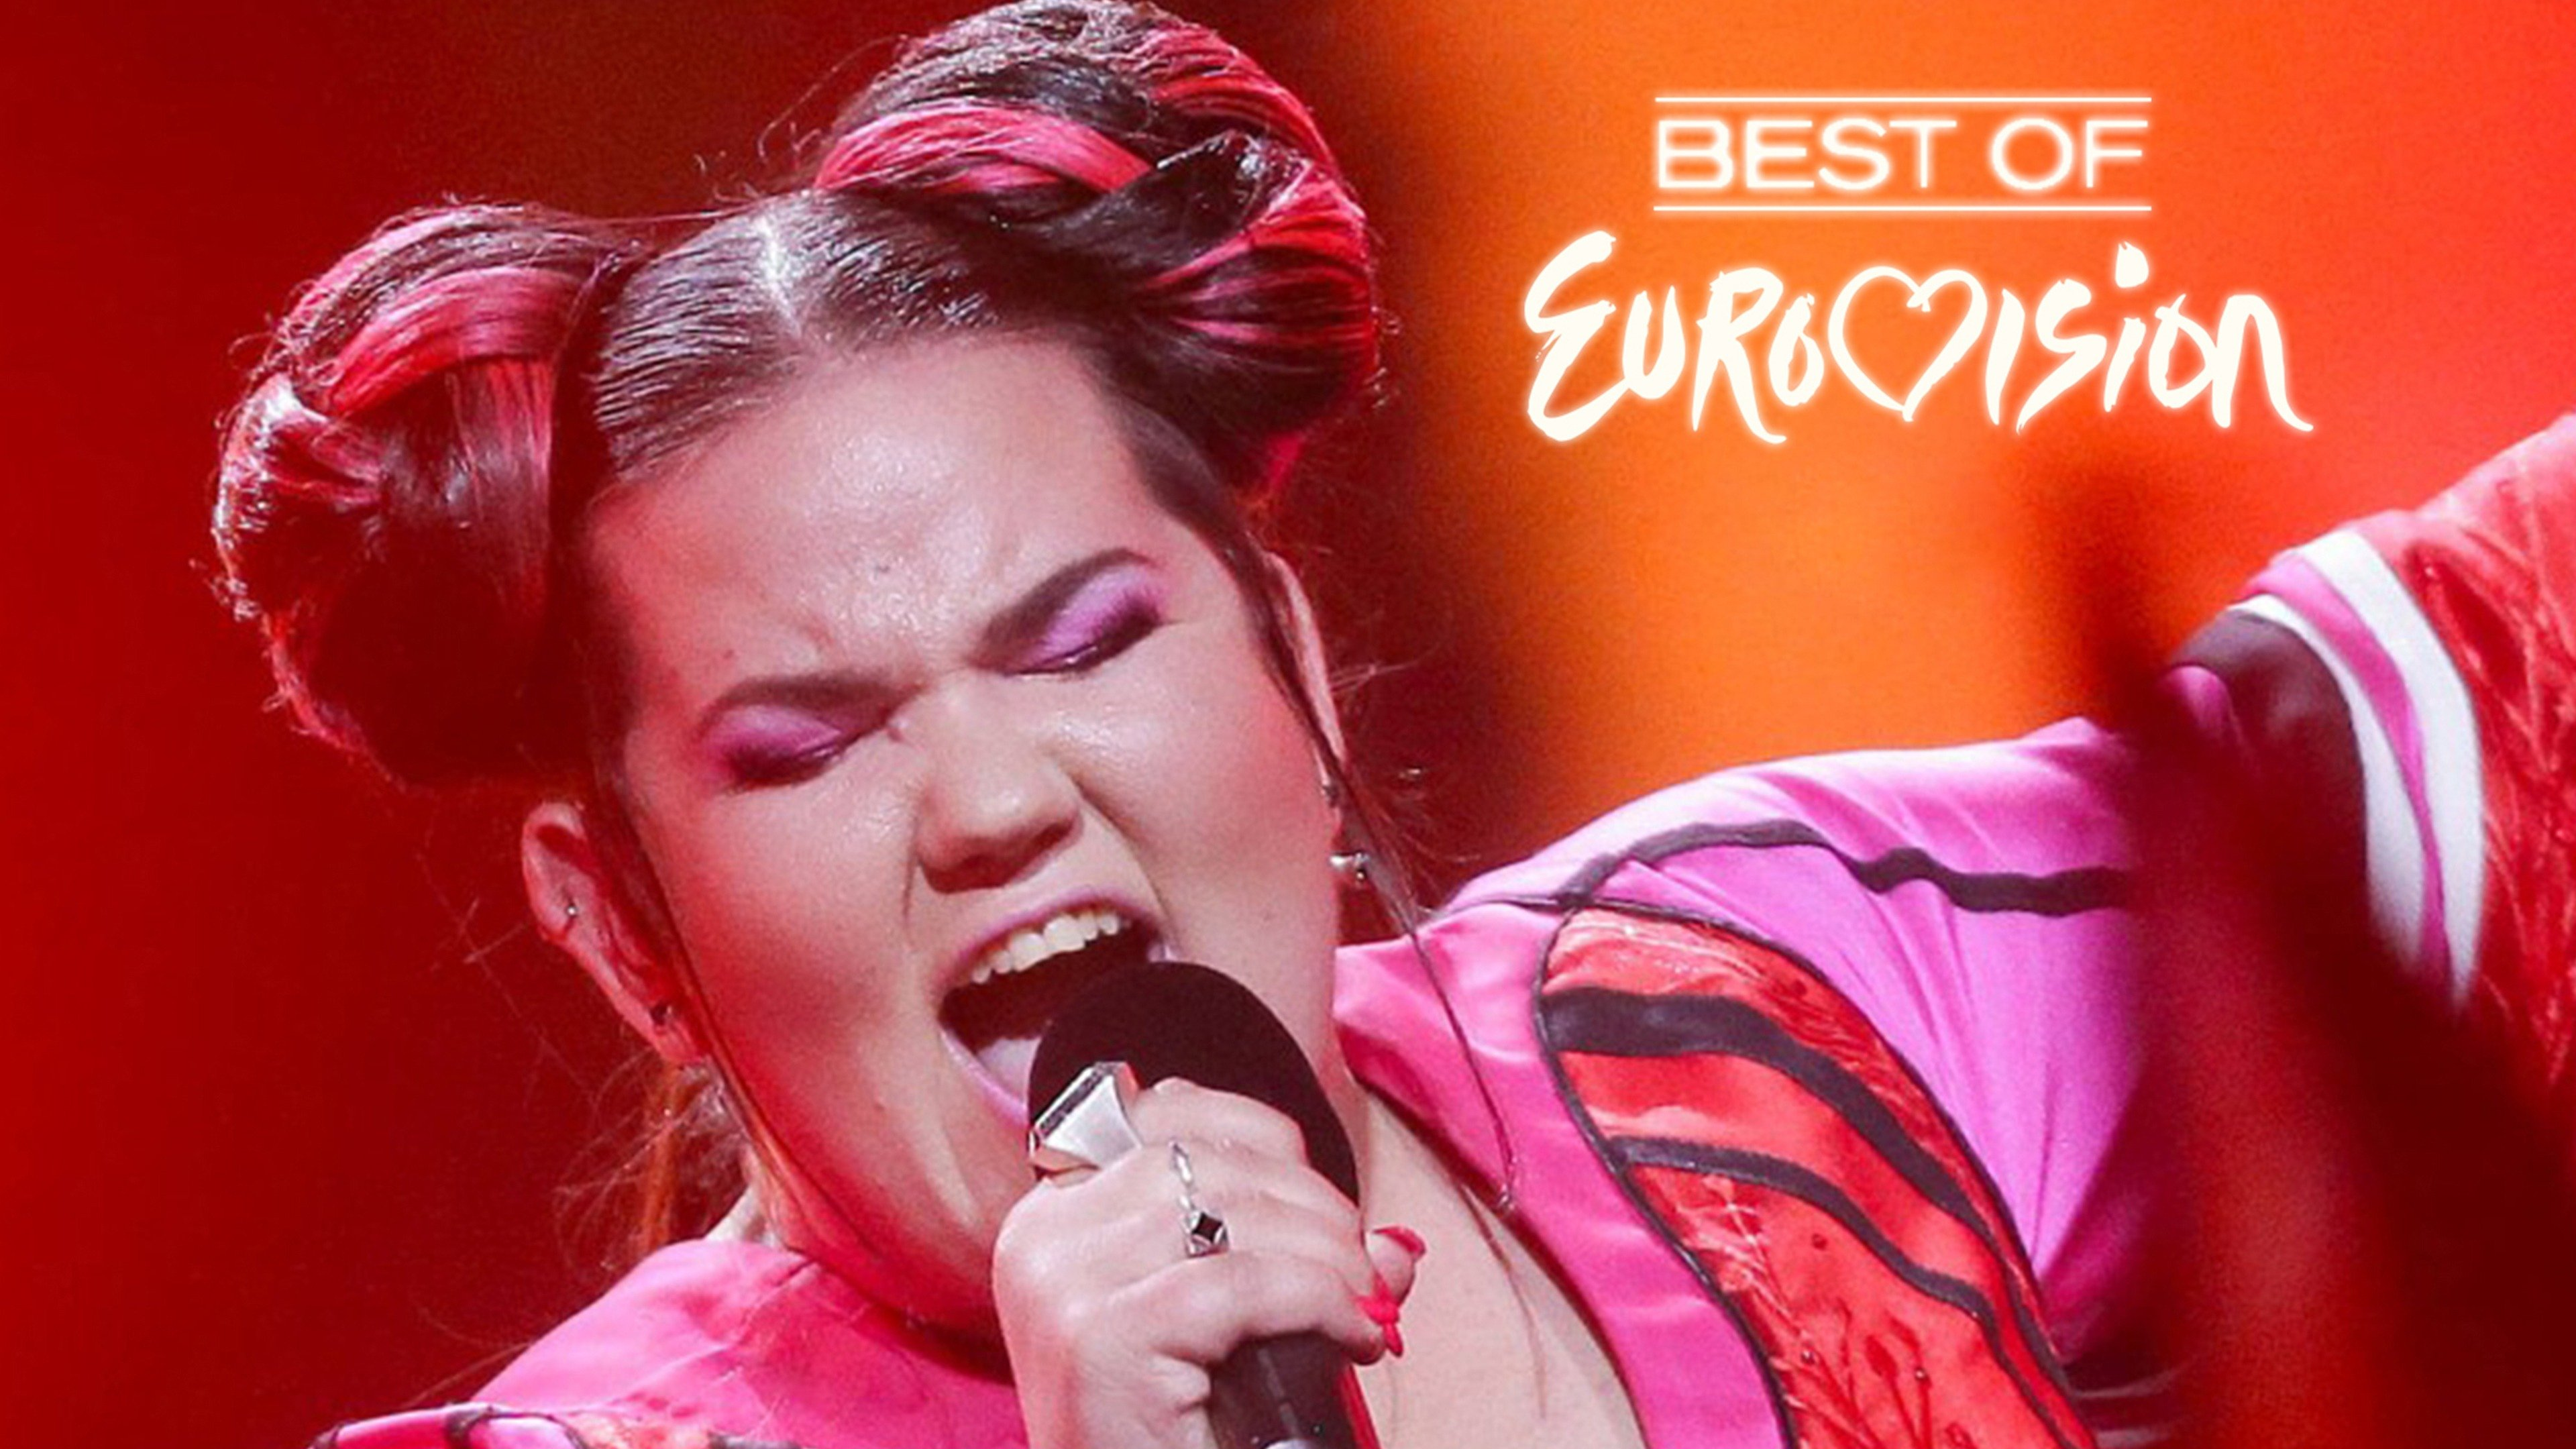 Best of Eurovision Calling